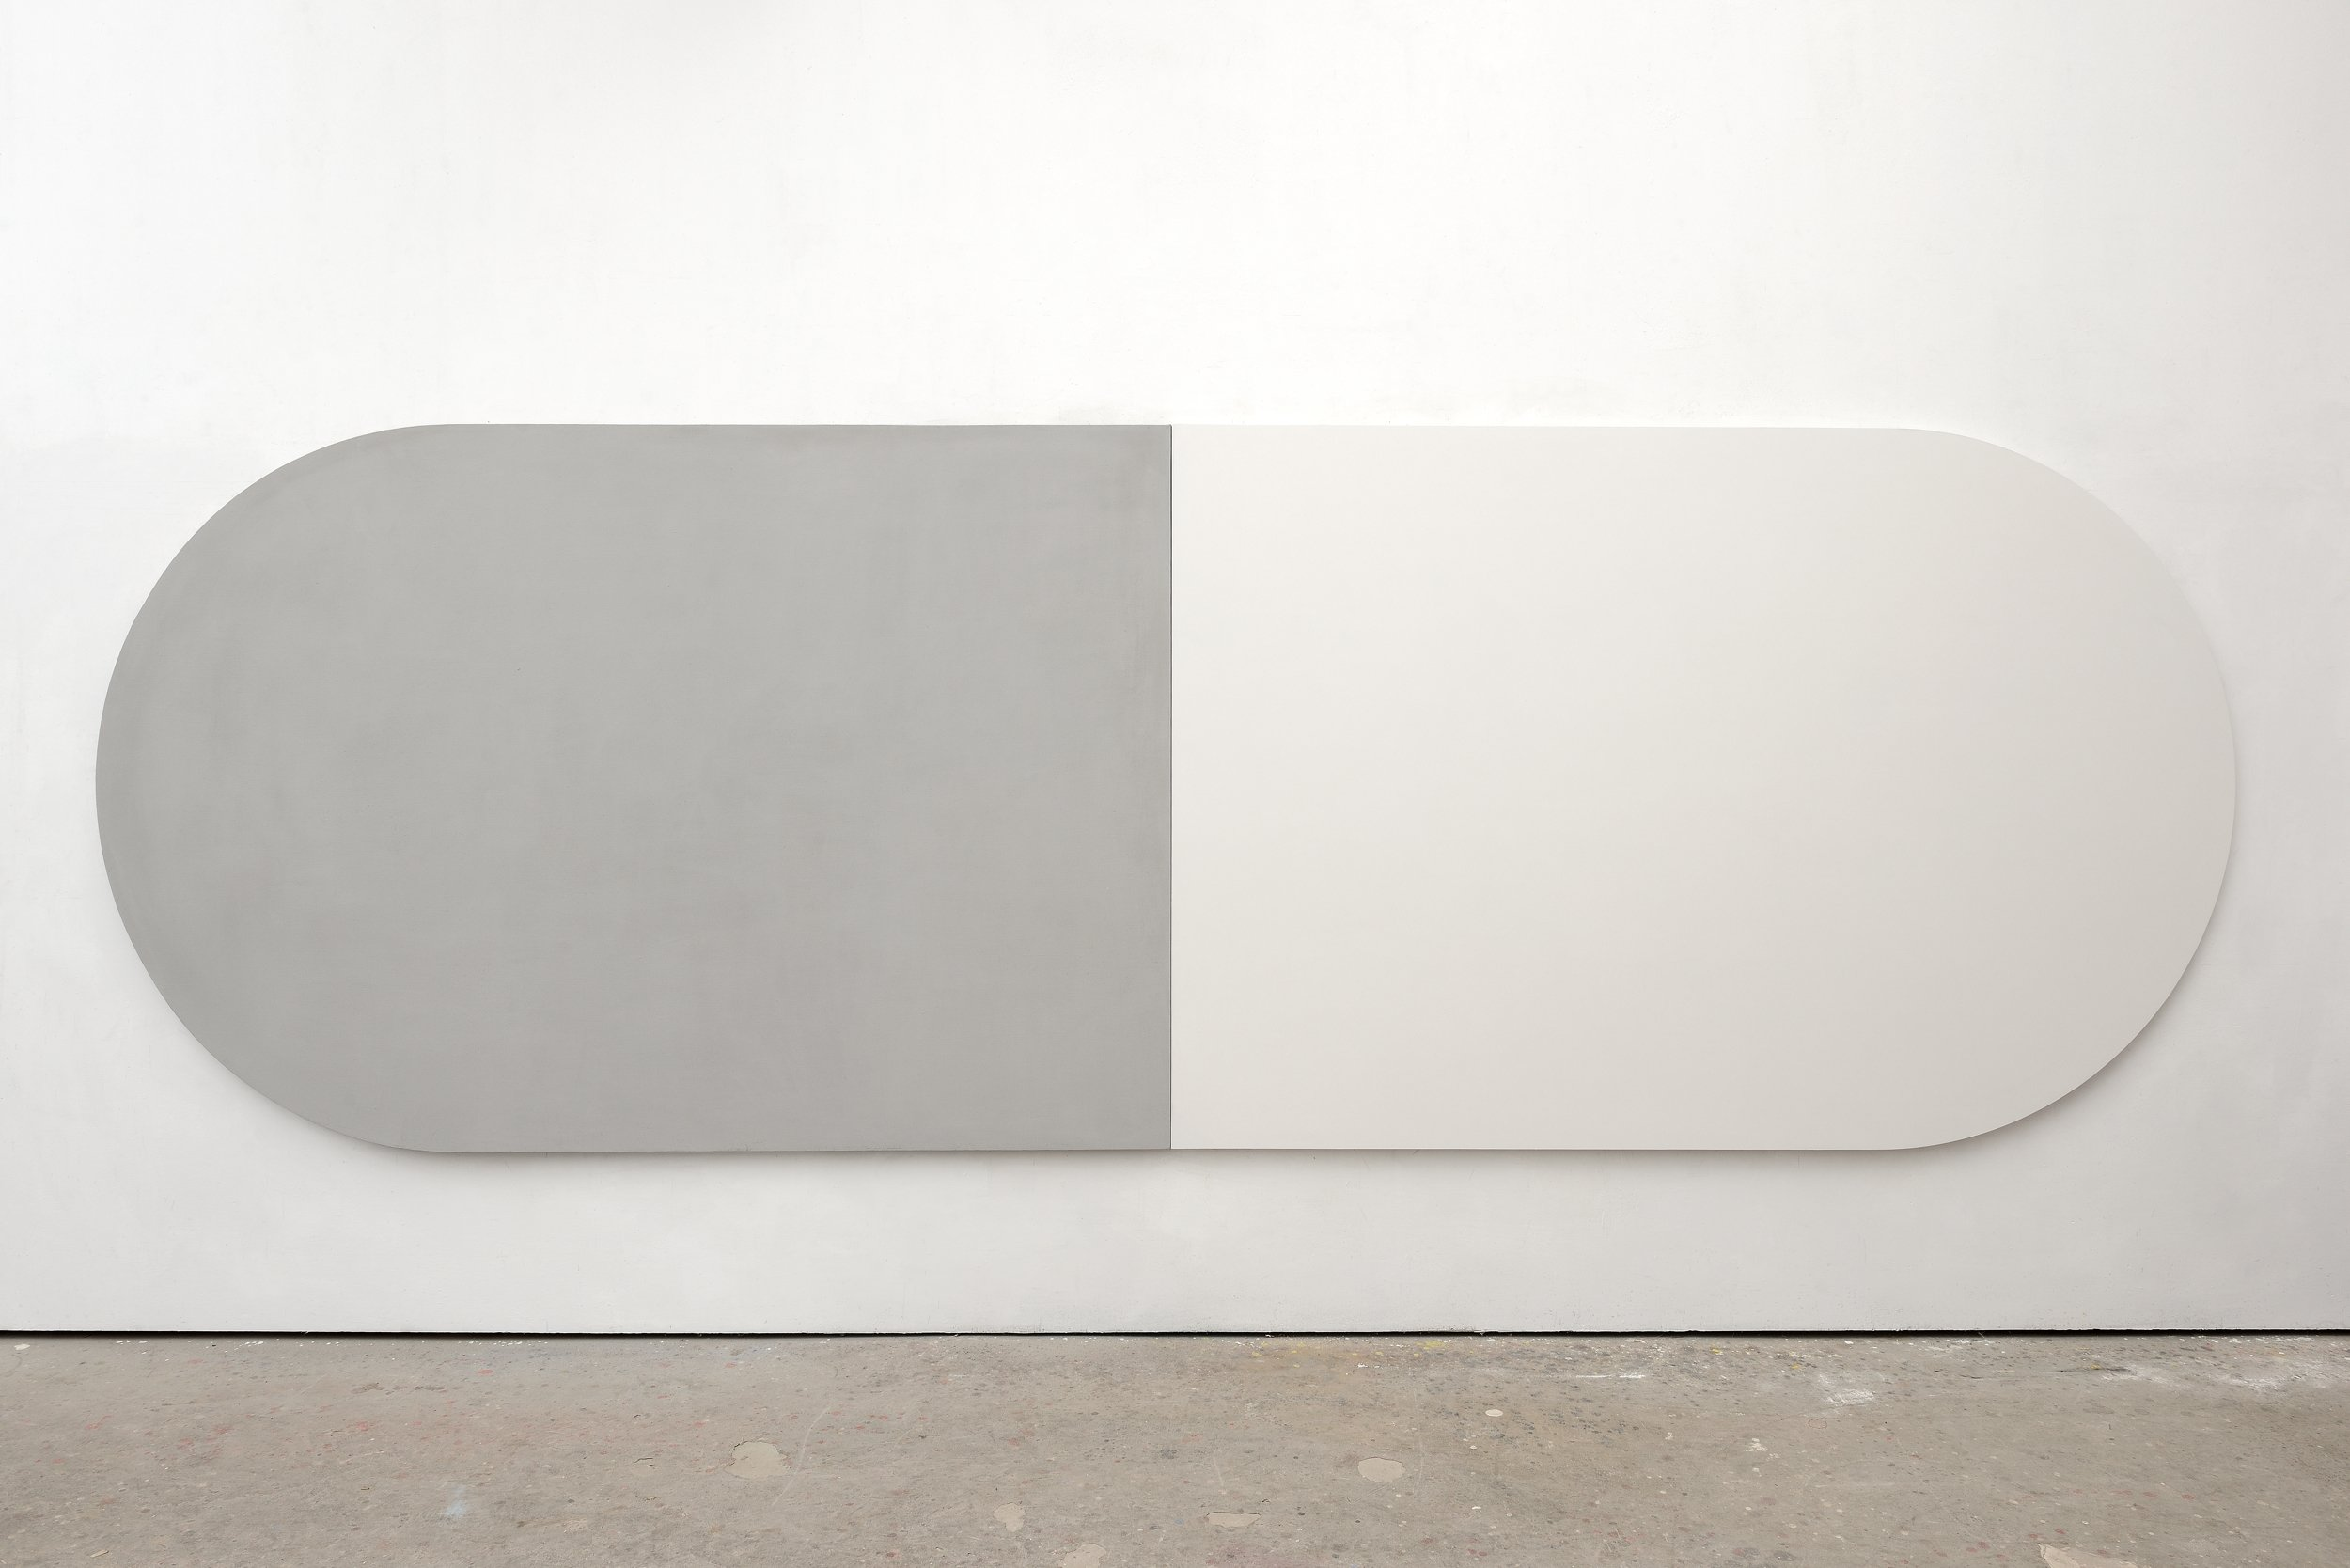 Paolo Serra Untitled, 2019 oil on canvas per canvas:  250 x 167 cm 98 3/8 x 65 3/4 in